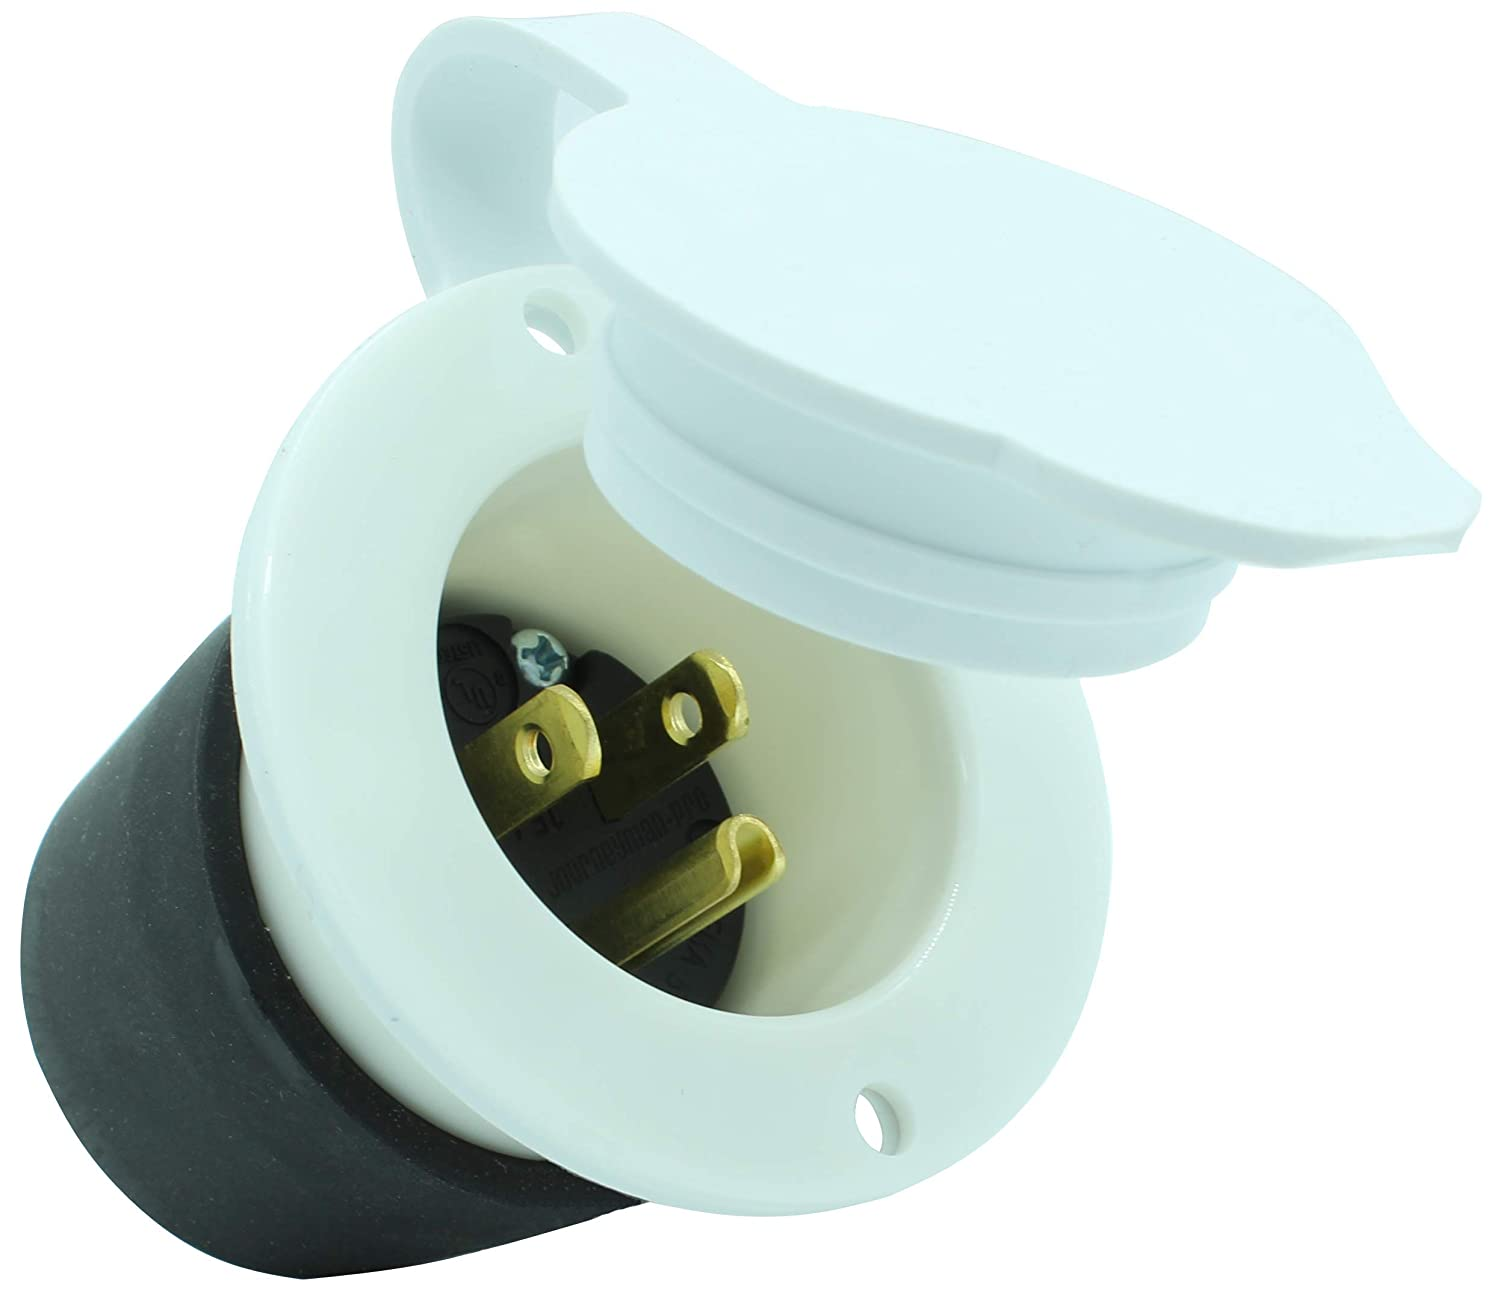 Journeyman-Pro 5278W 15 Amp 120-125 Volt, NEMA 5-15 Flanged Inlet, WHITE Commercial Grade, 2 Pole-3 Wire, Straight Blade 110V/115V RV Replacement Plug Charger Receptacle (Front & Back Cover)